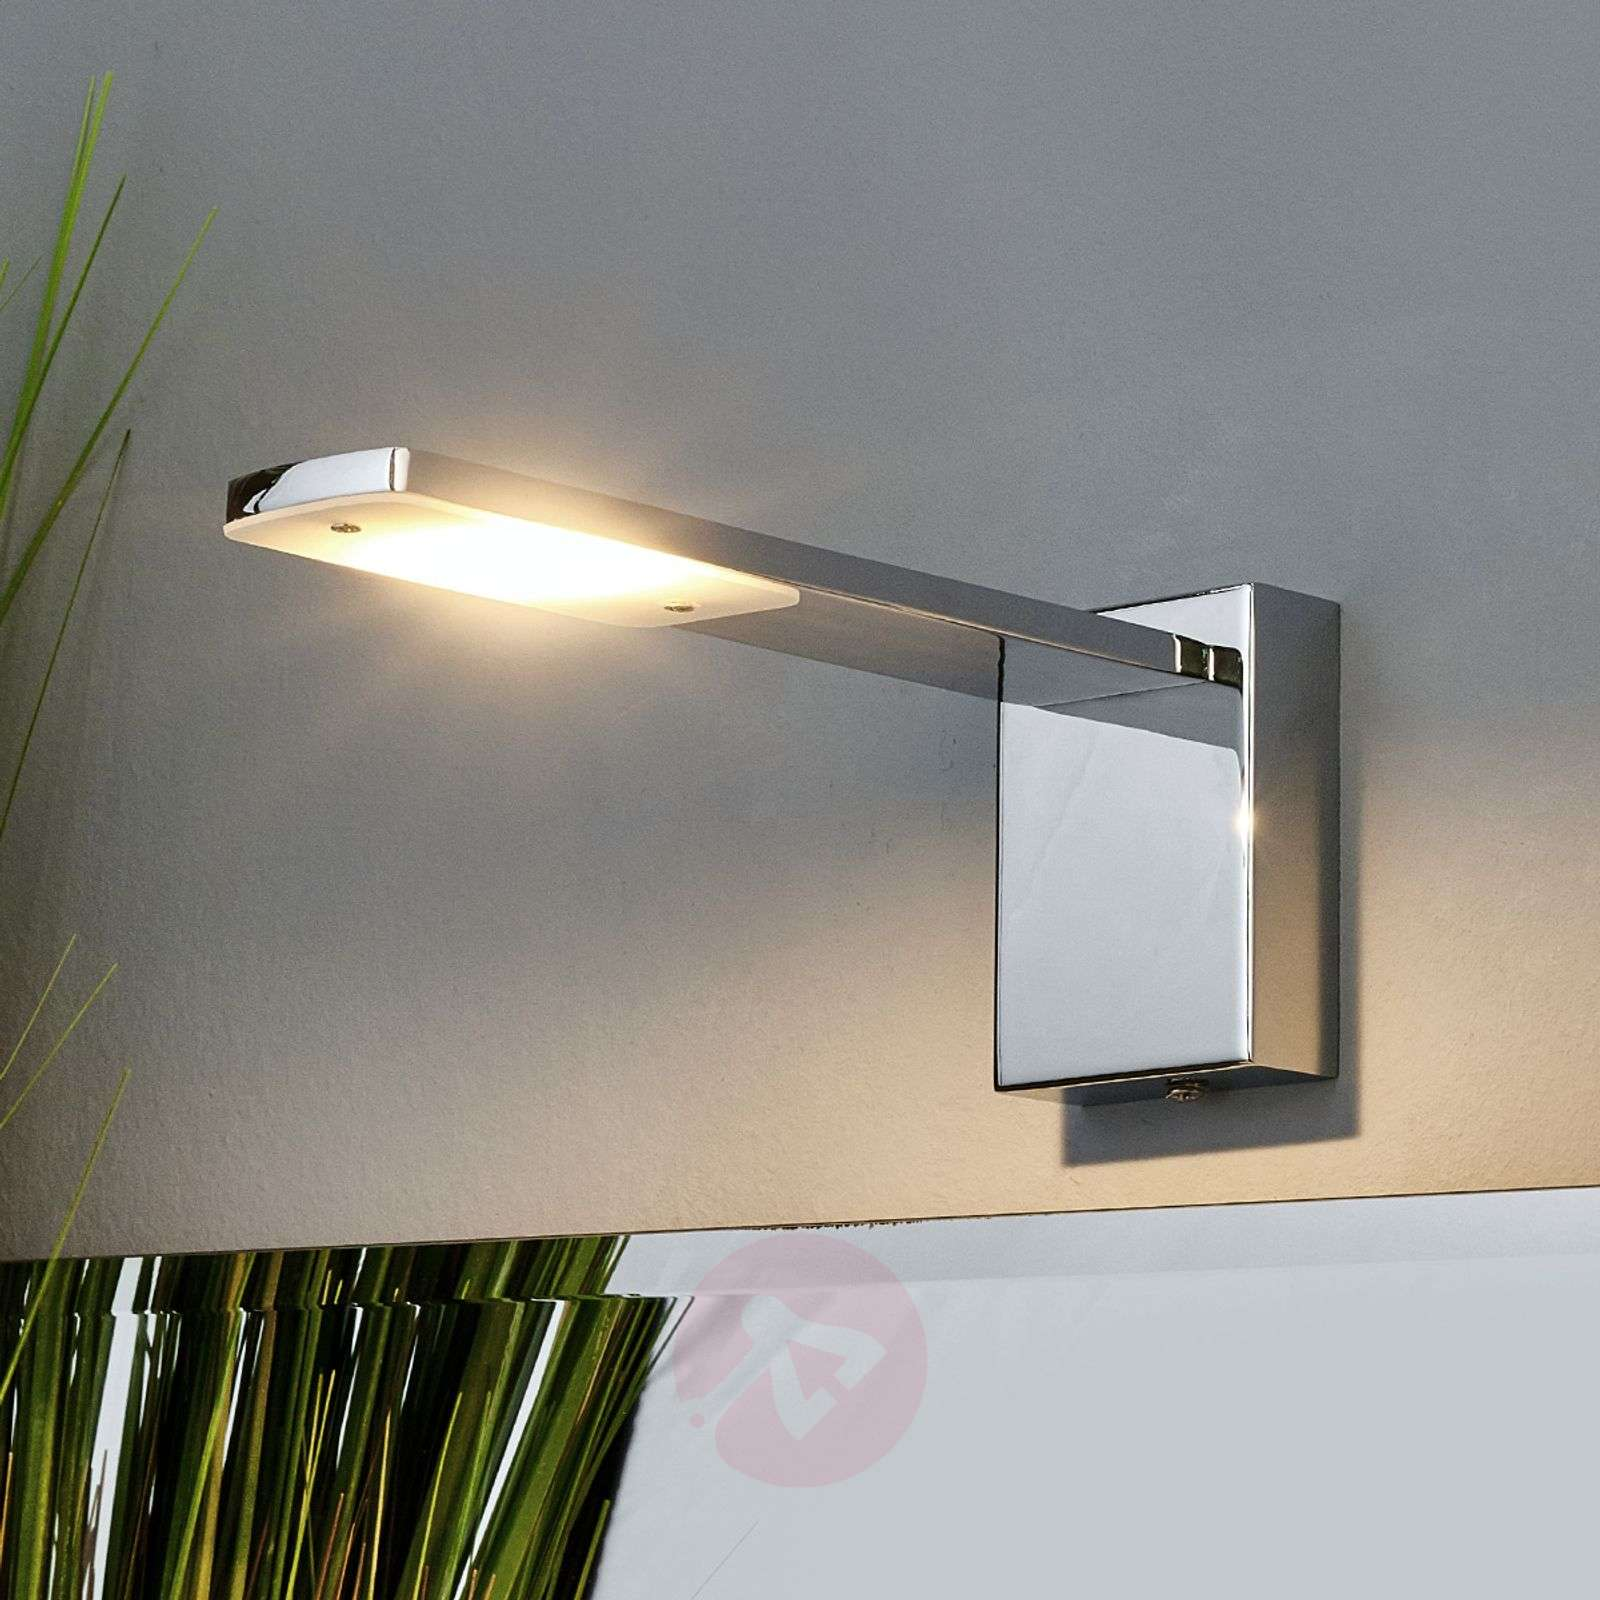 Applique pour miroir LED Tizian exclusive-9641045-01